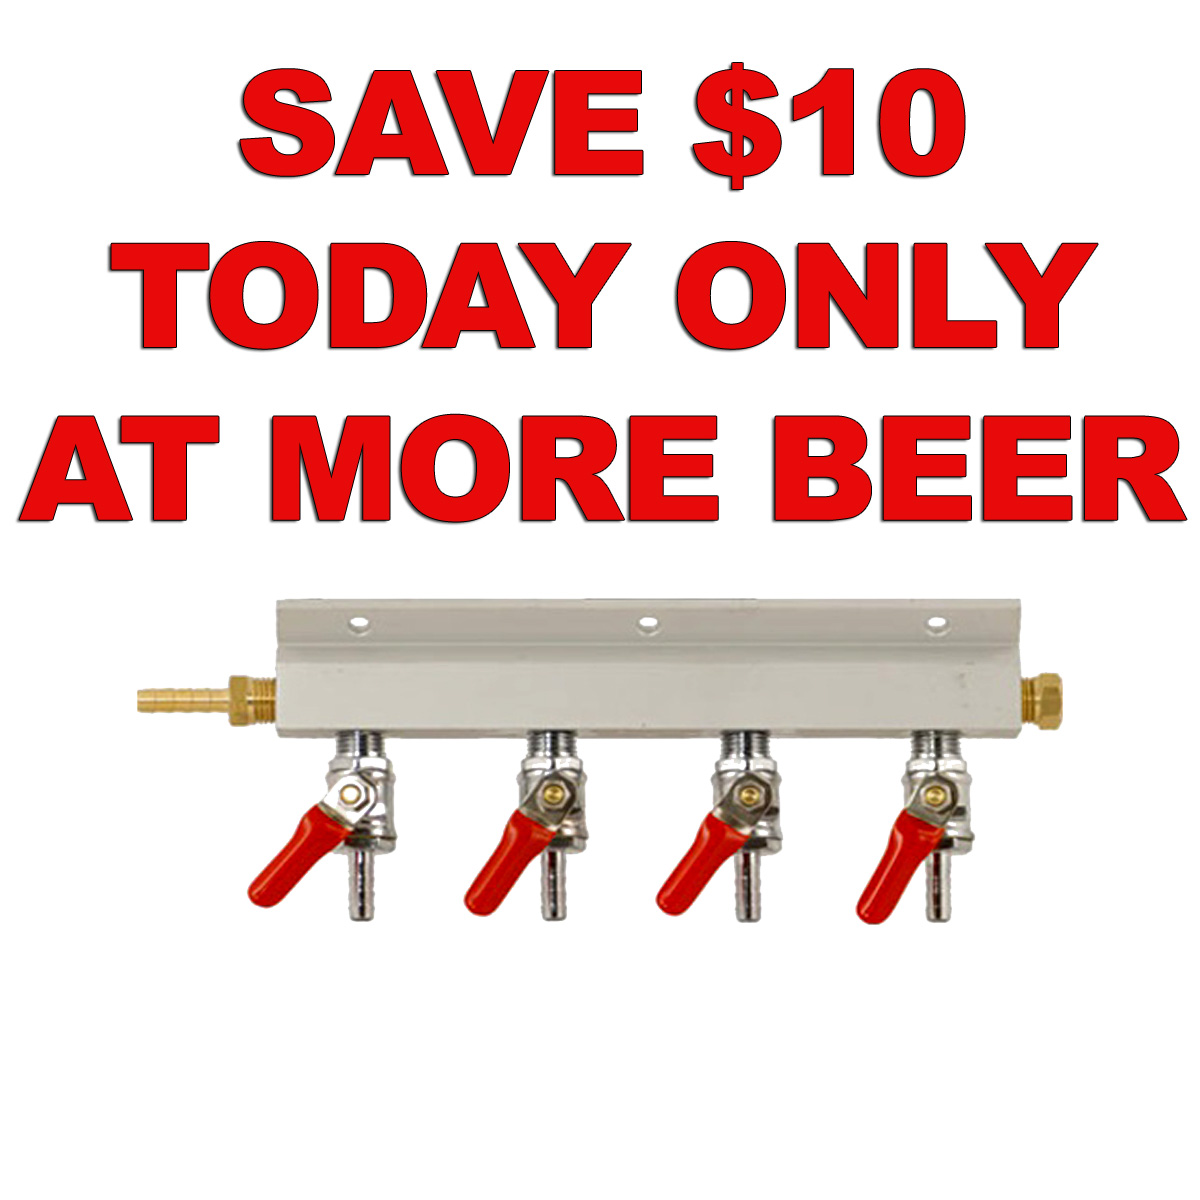 MoreBeer Savve $10 On This 4-Way CO2 Manifold Just $24 With More Beer Promo Code Coupon Code